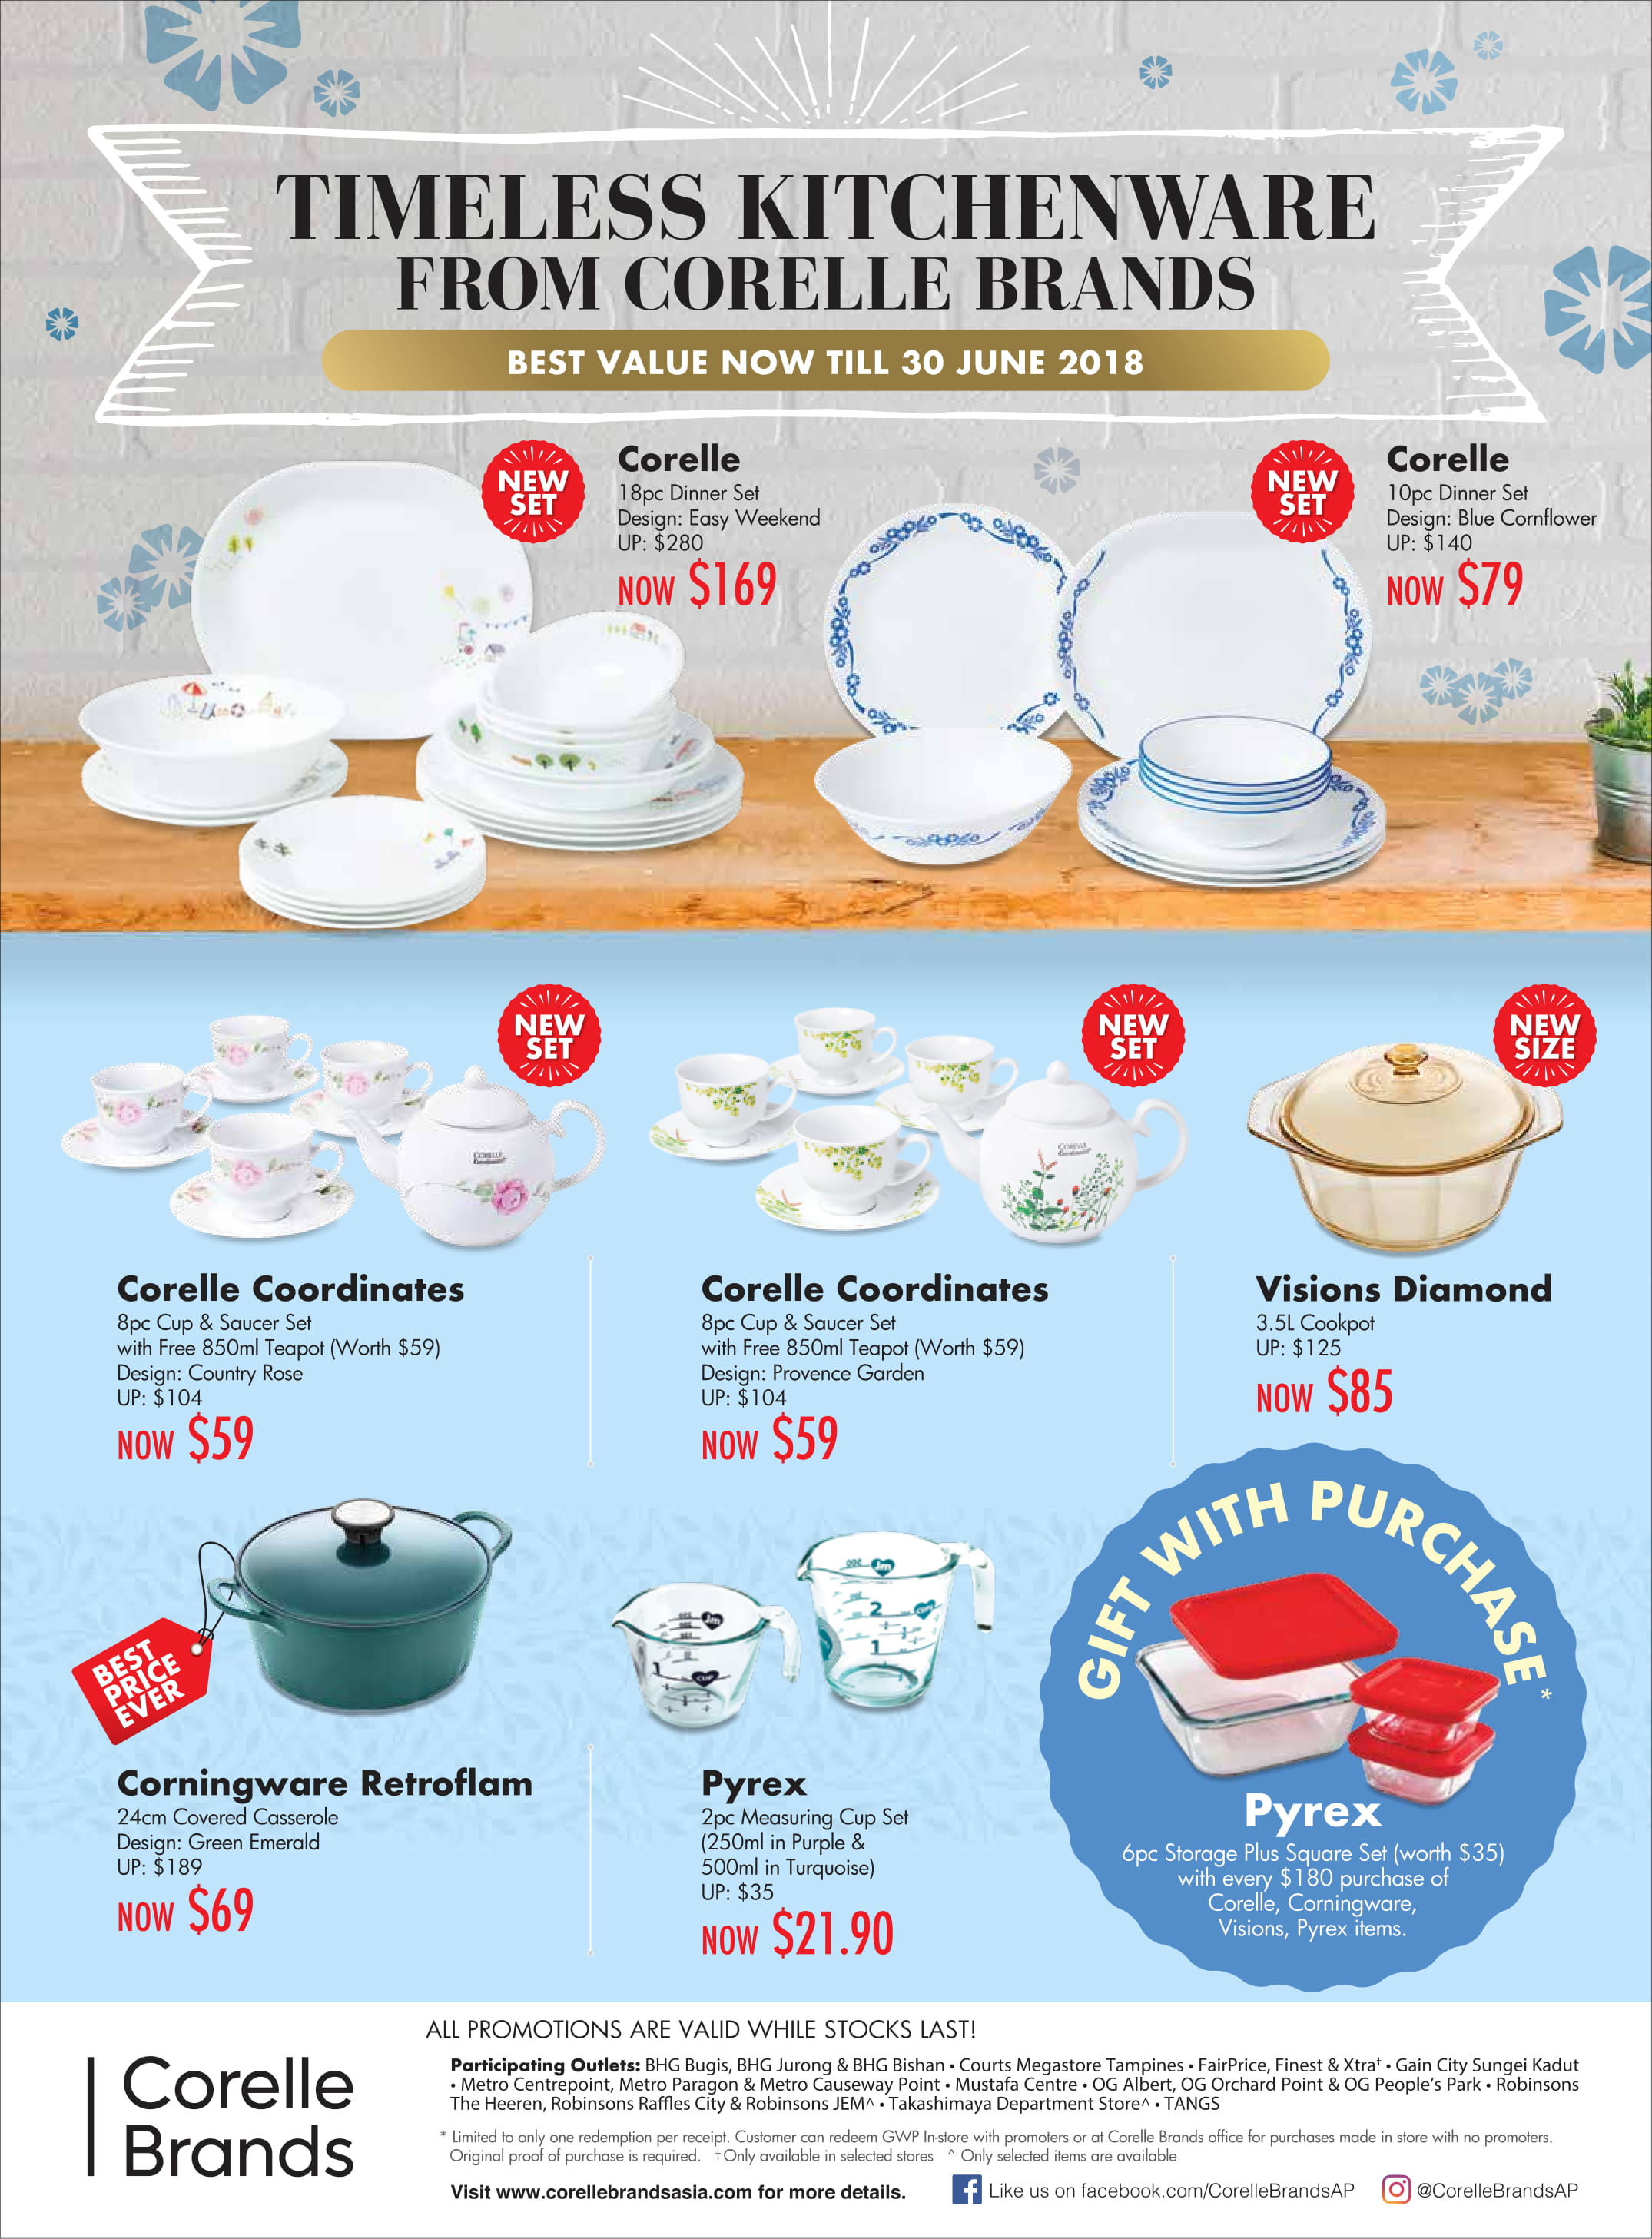 Pyrex Love & Corelle Brands - Promotion till 30 June 2018